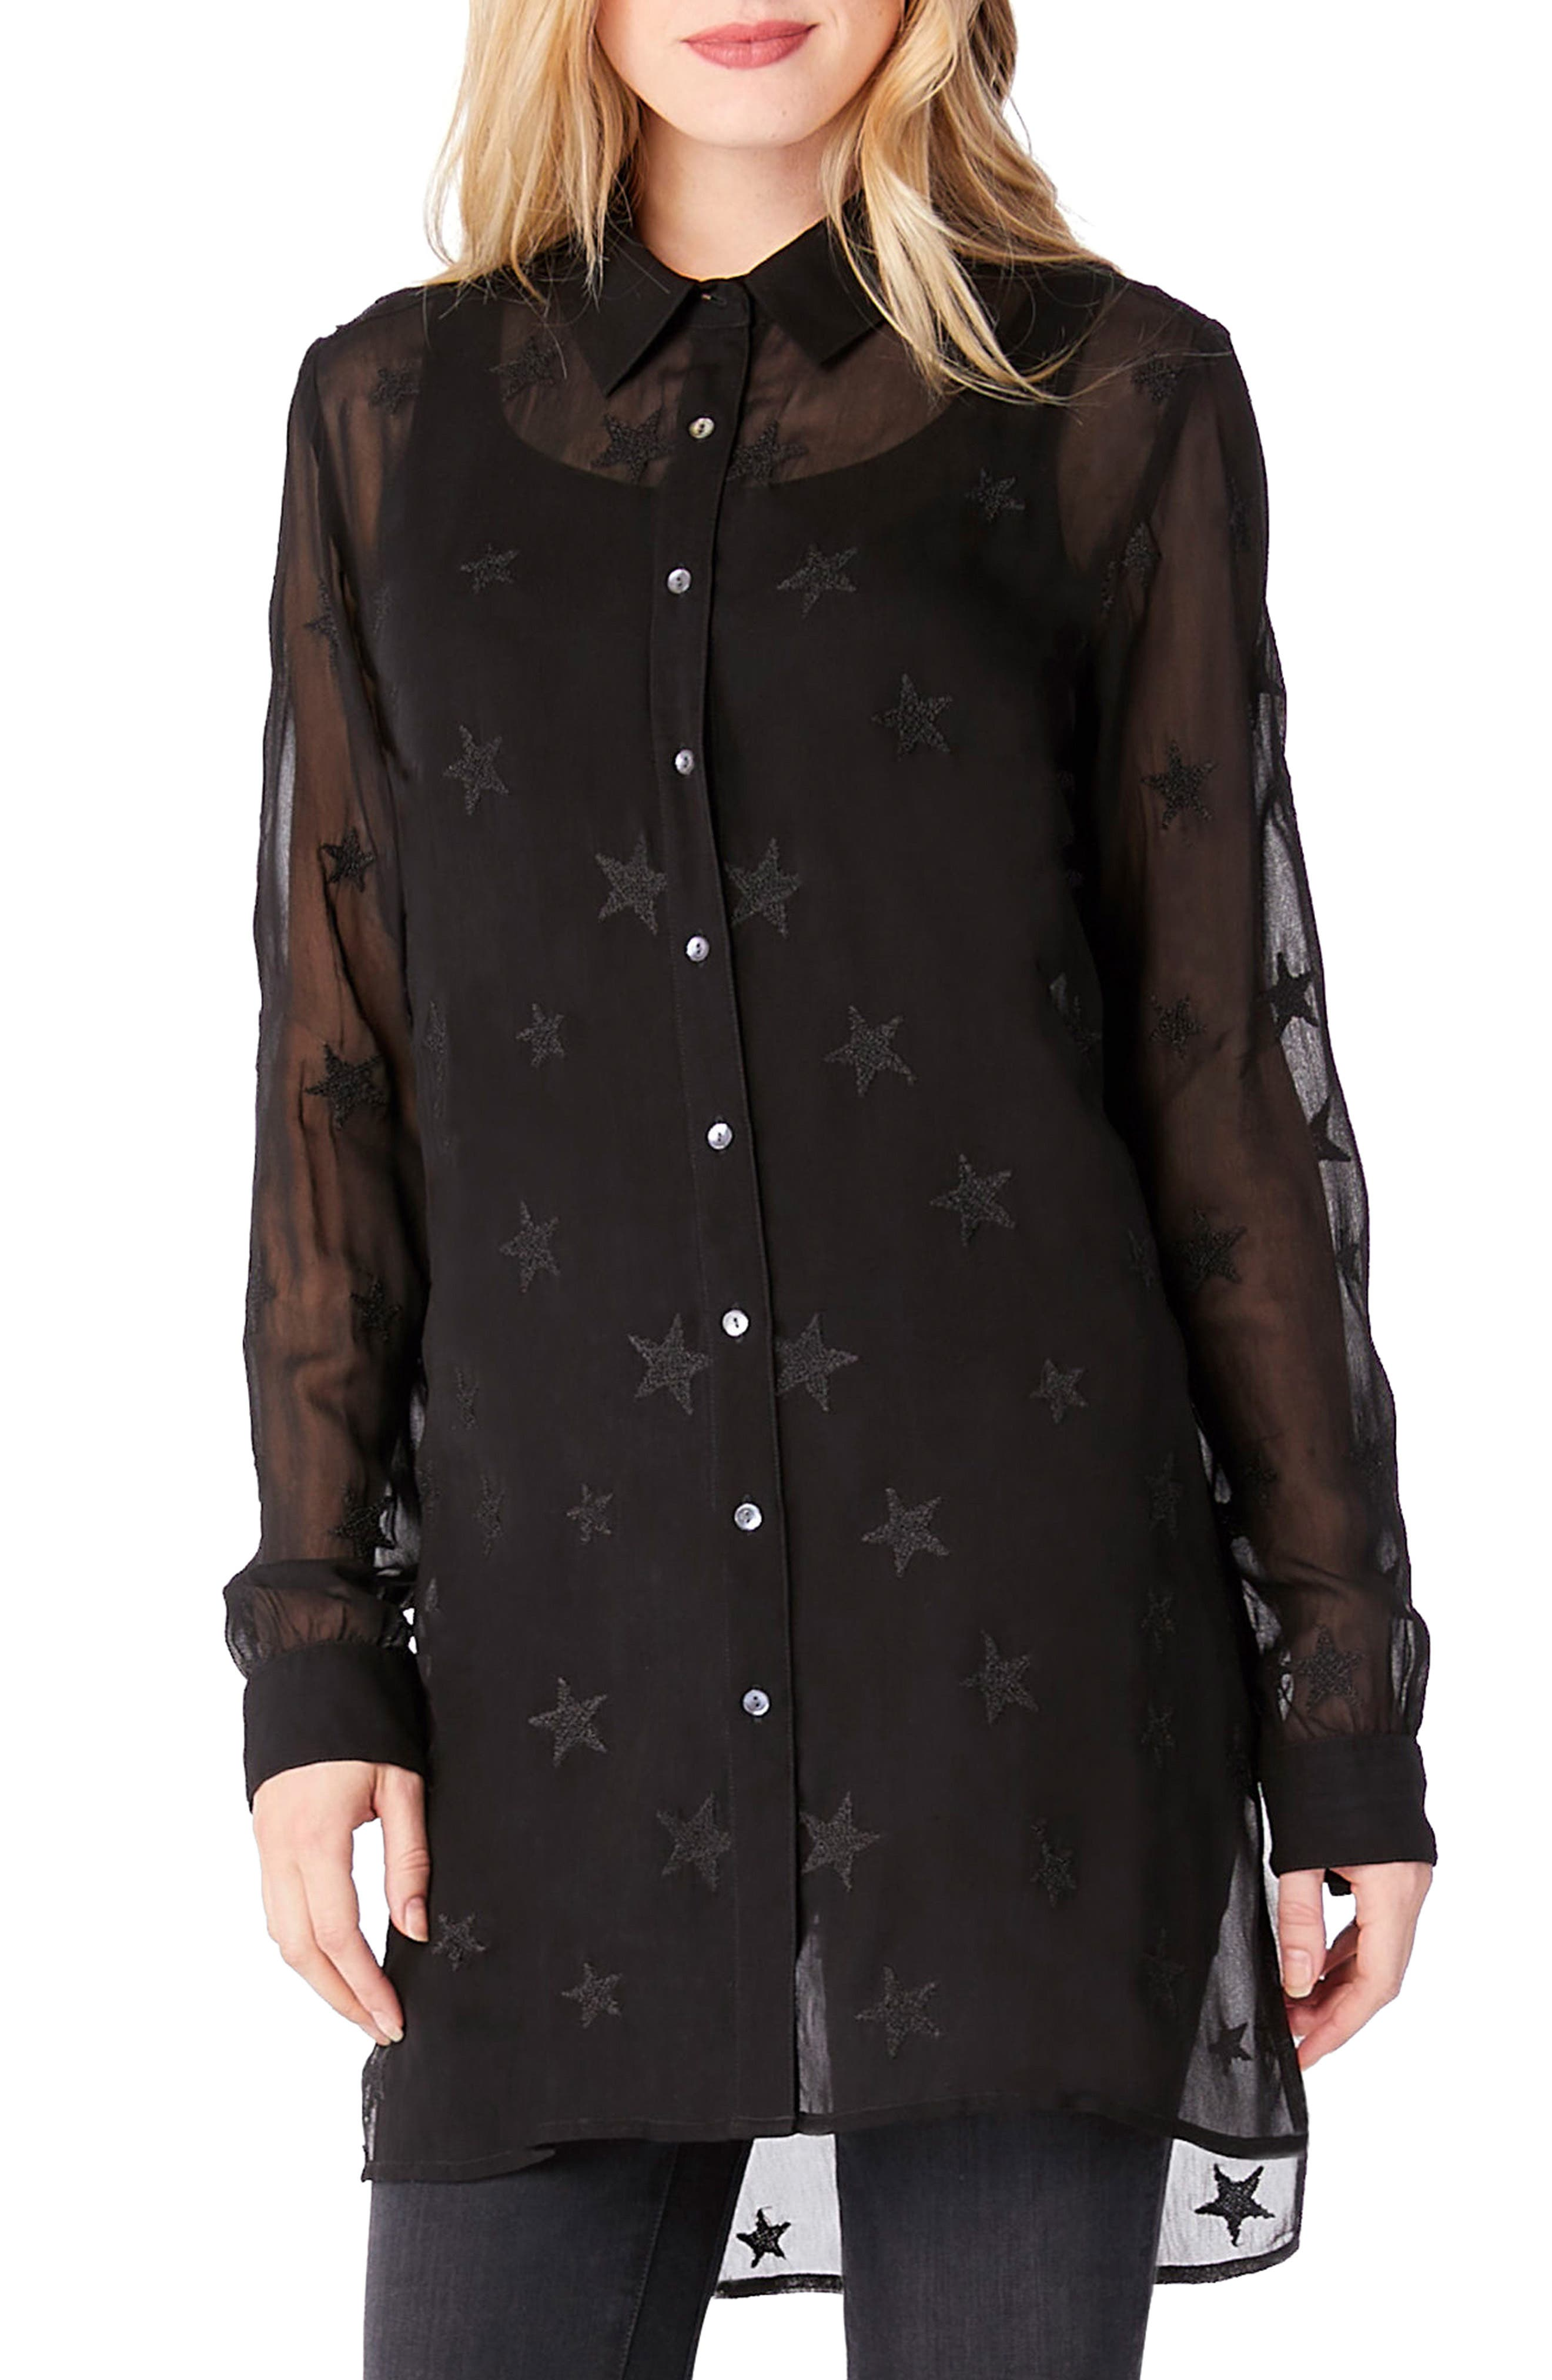 Star Embroidered Button-Up Shirt,                         Main,                         color, 001